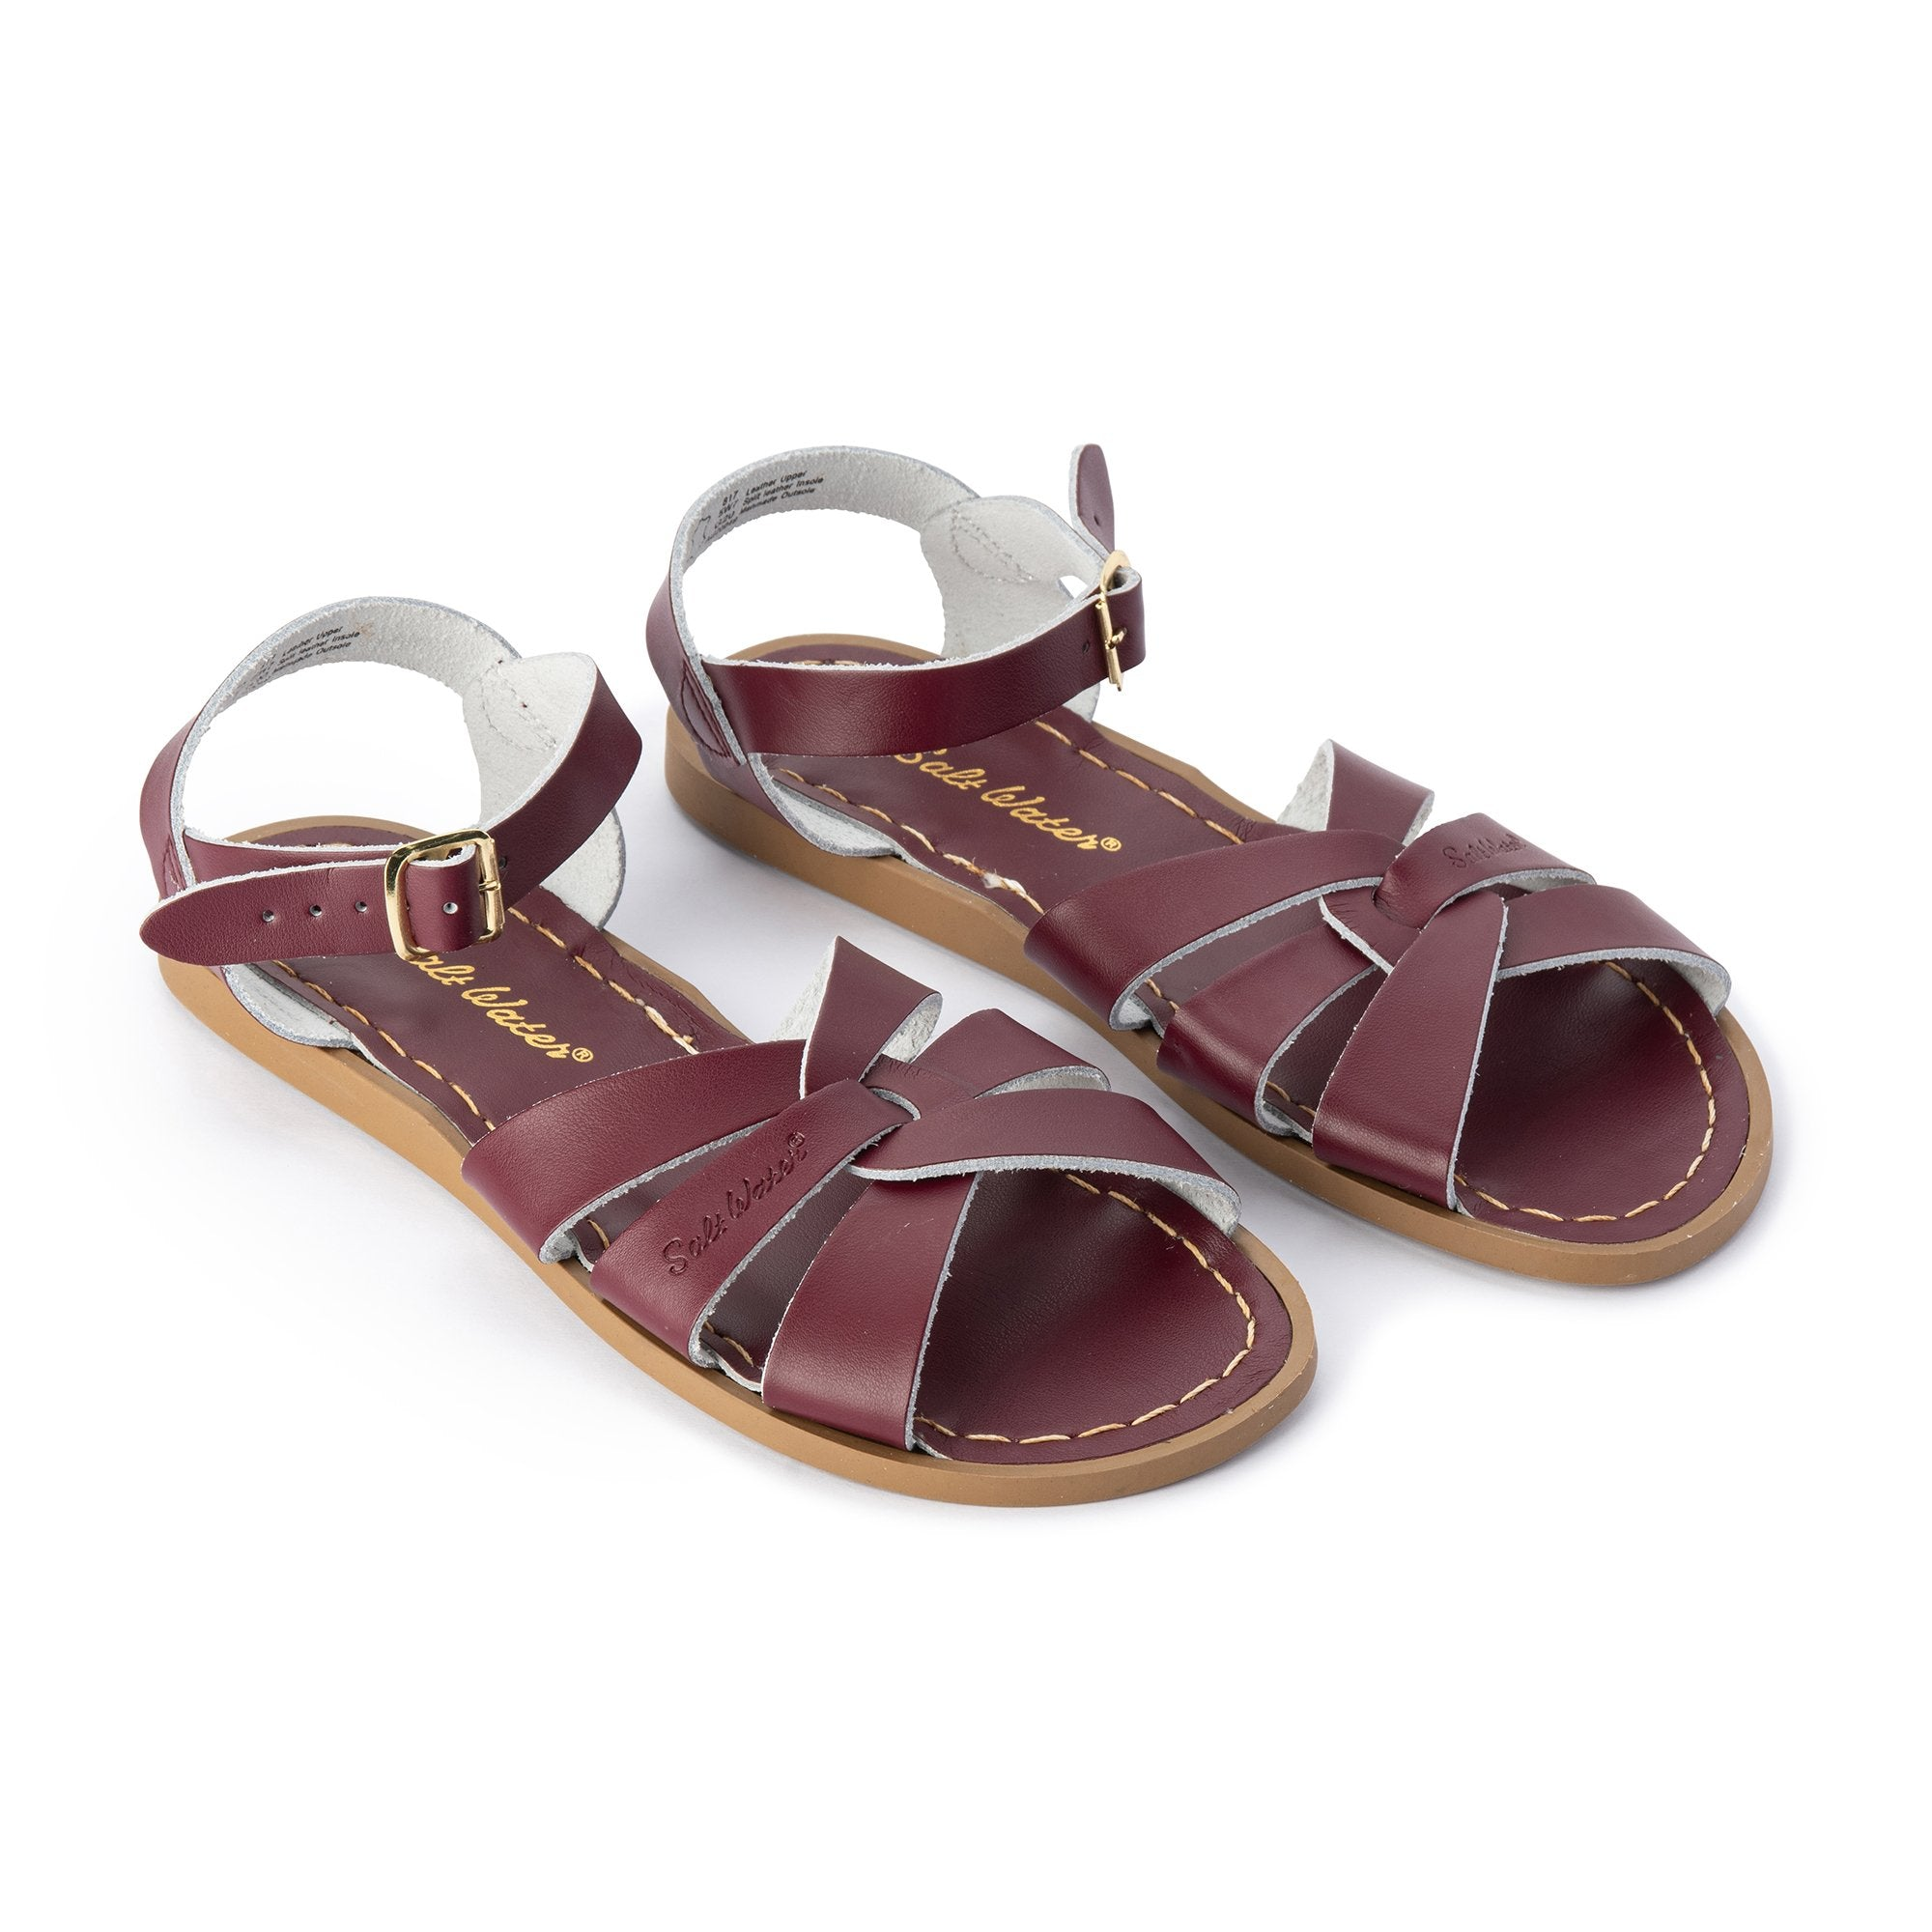 Salt Water Original Sandals in Claret